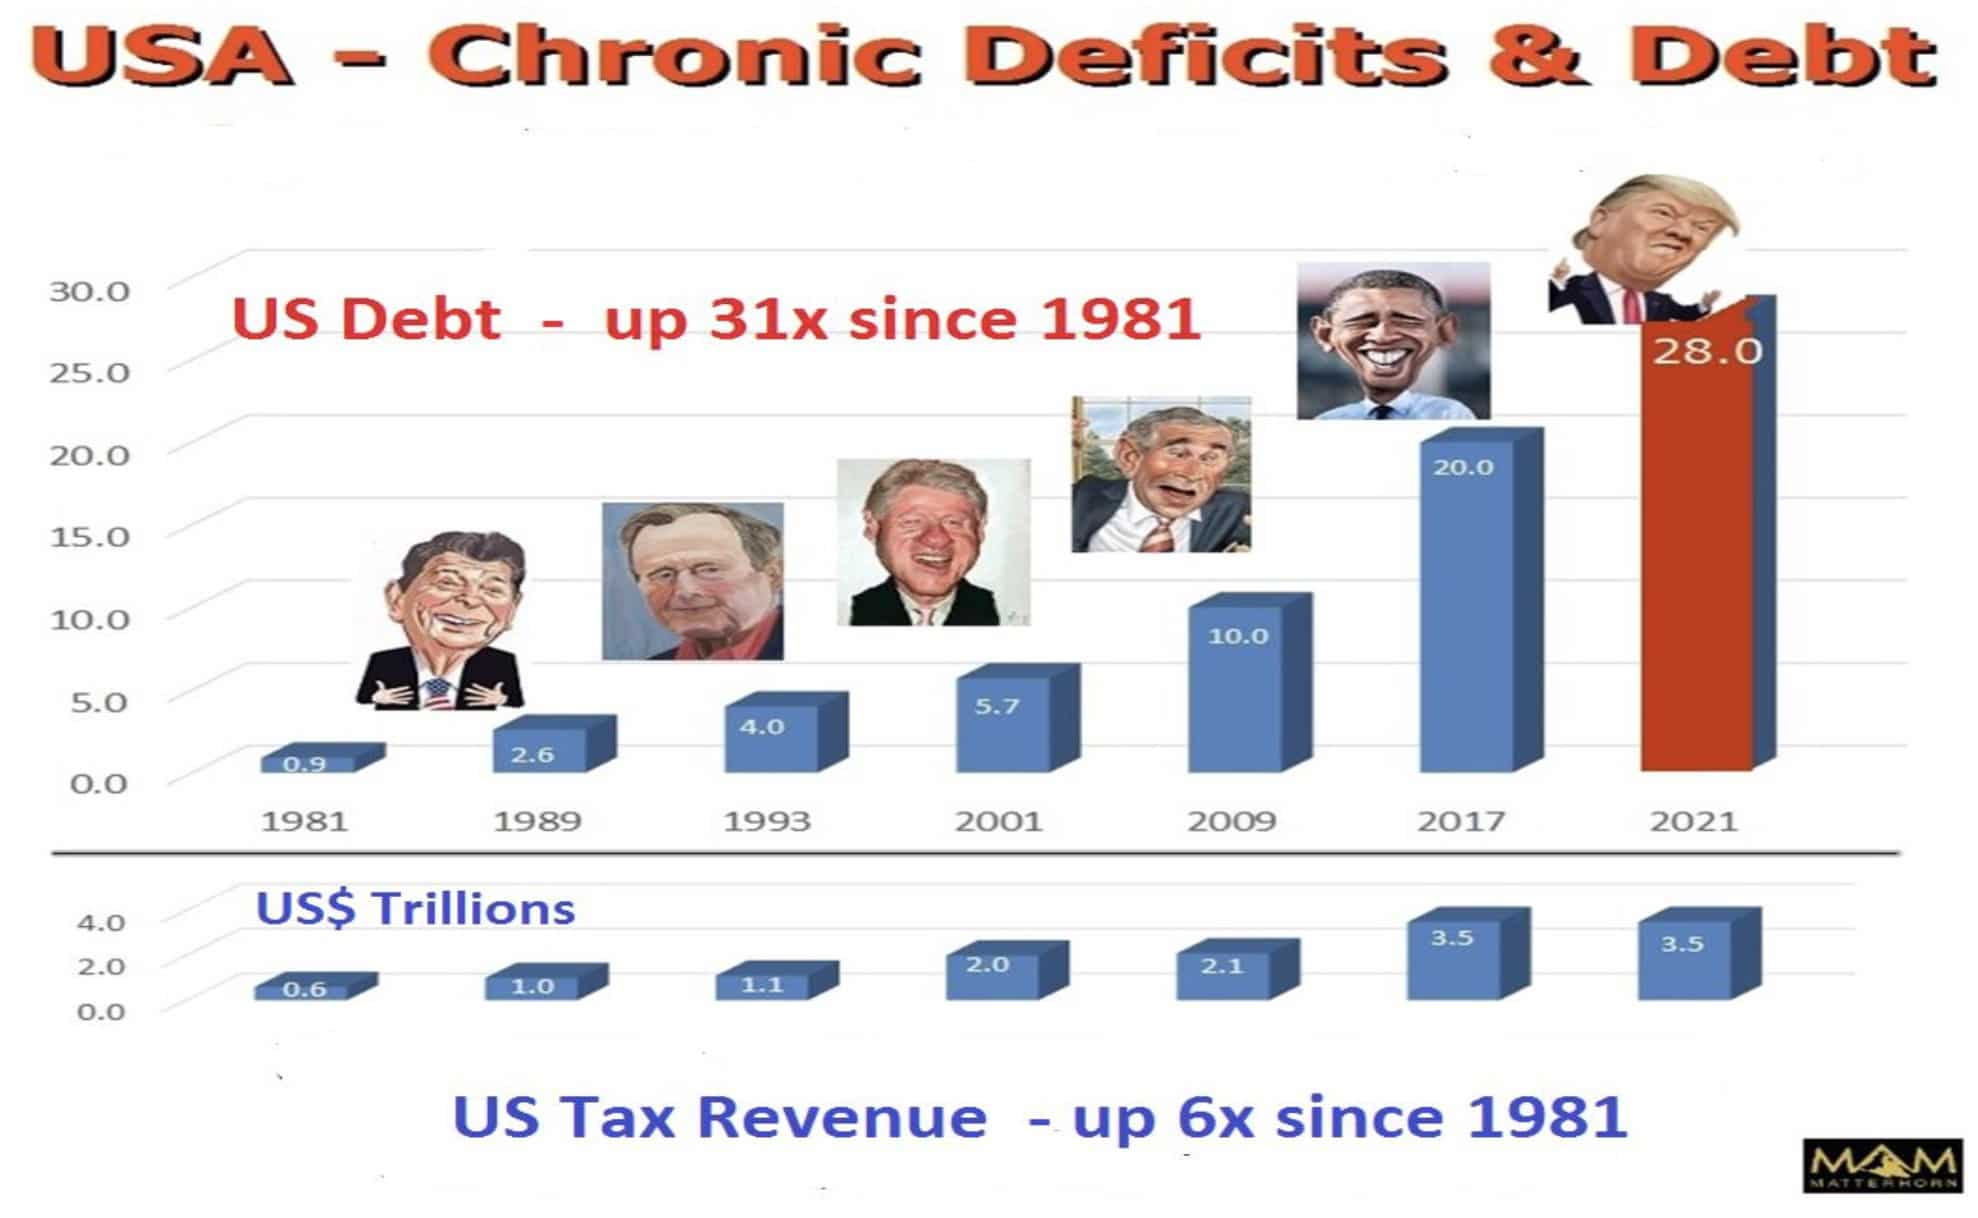 usa-chronic-deficit-debt